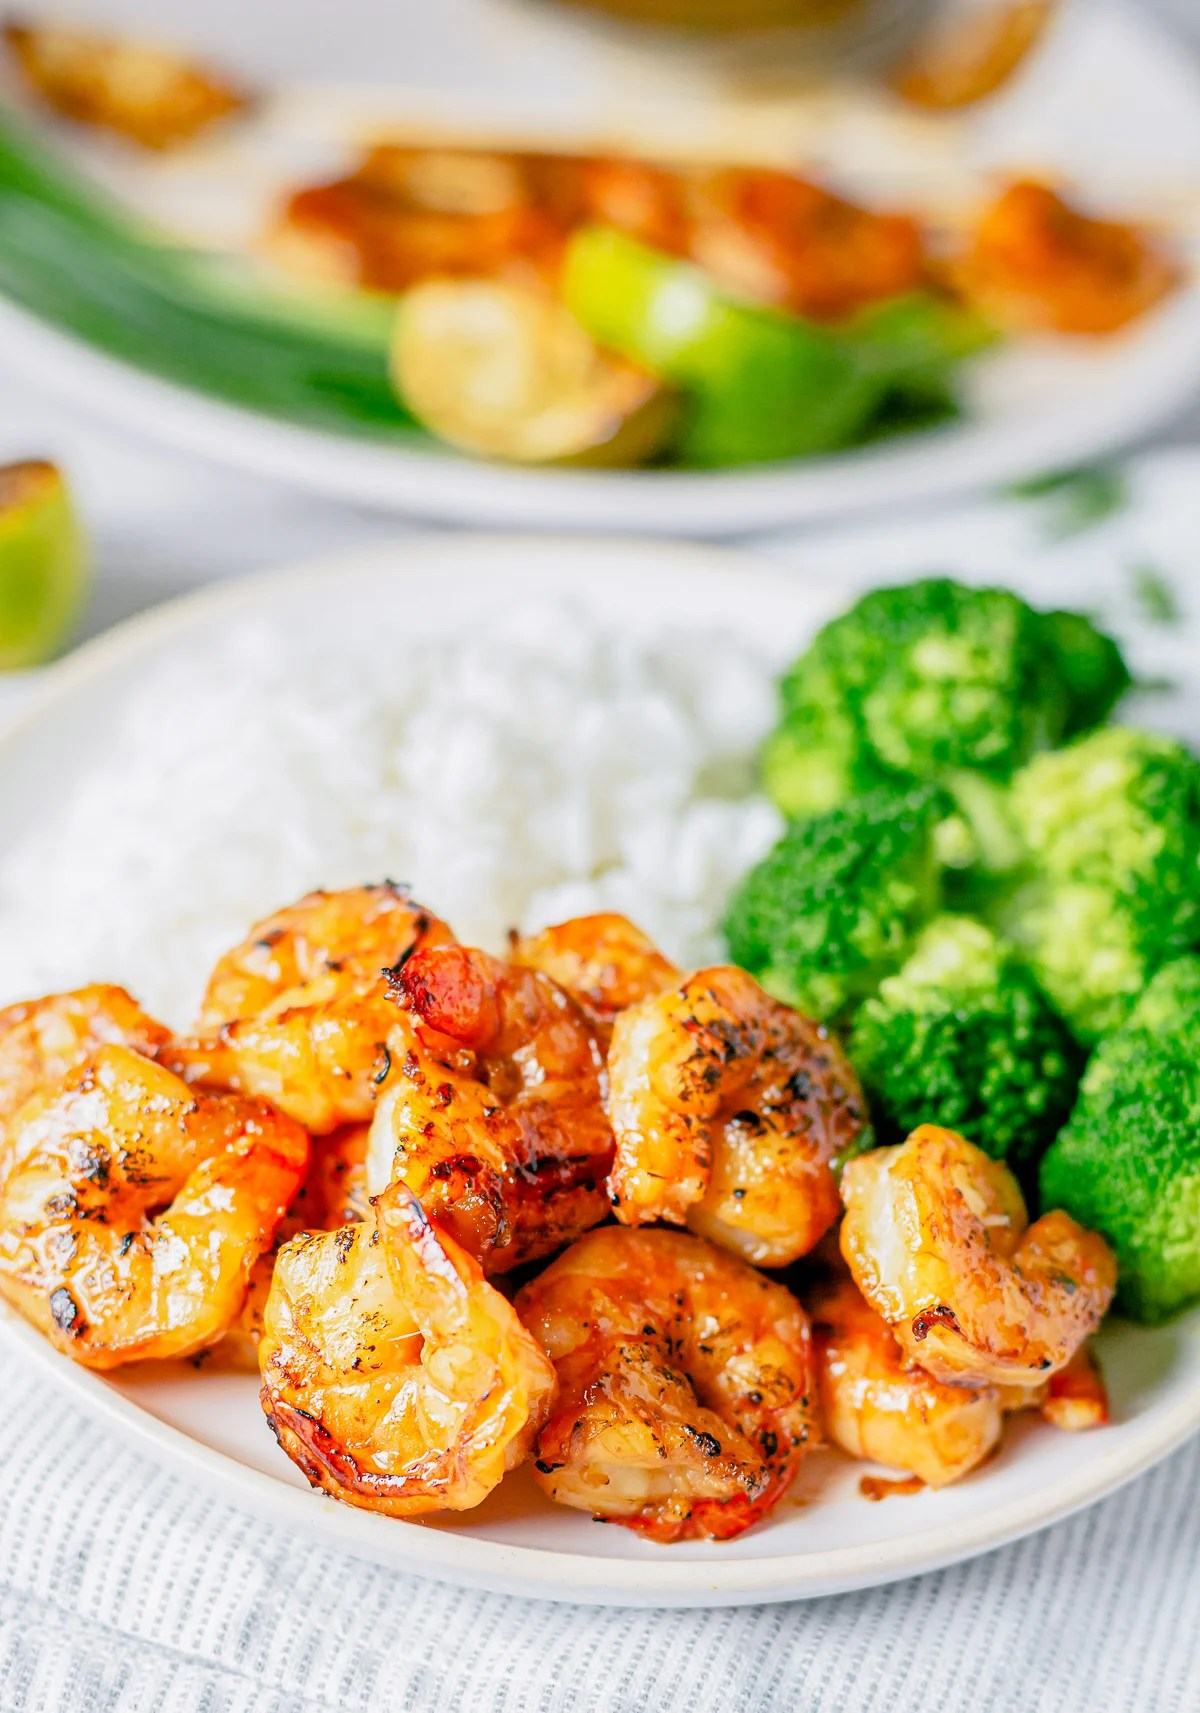 Shrimp off skewer on plate with rice and broccoli